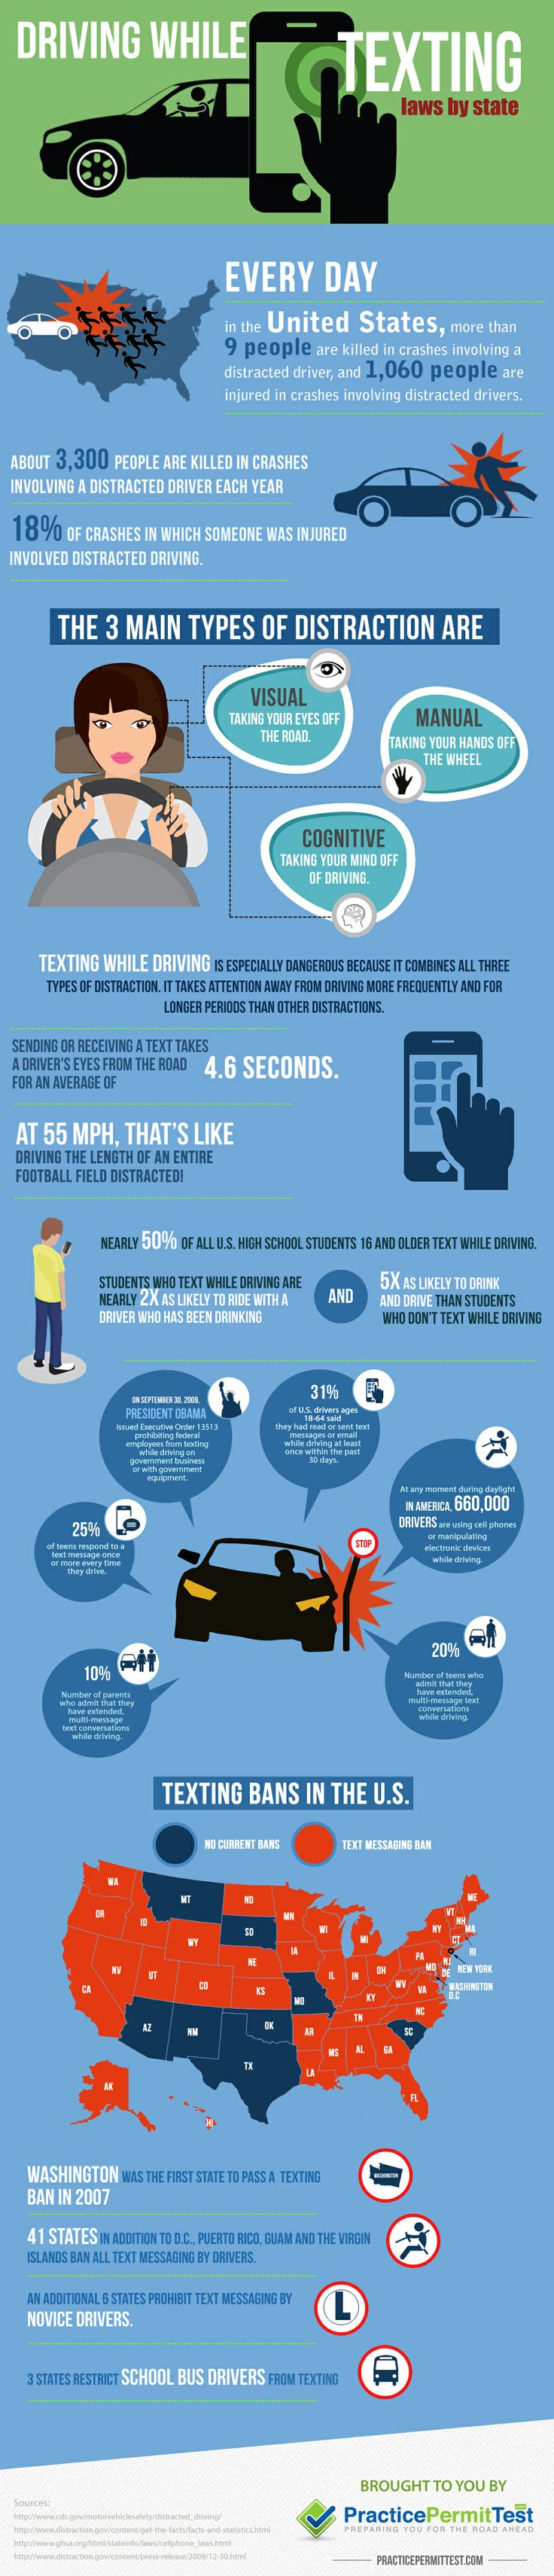 driving-while-texting-infographic